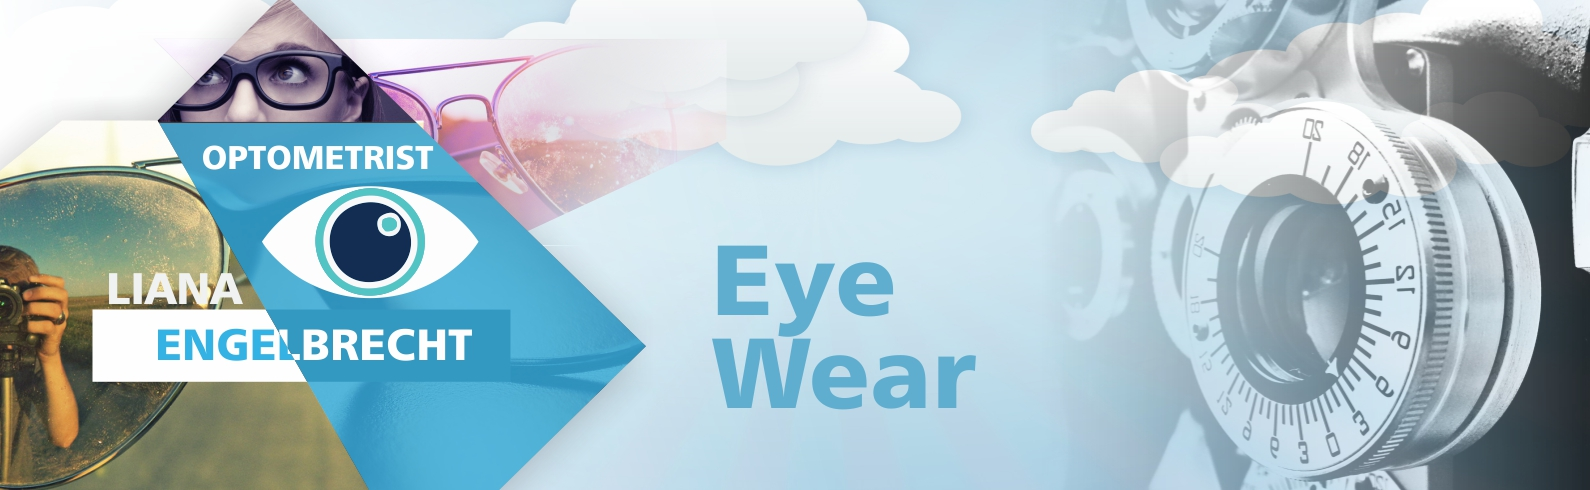 Liana Website Banner Eye Wear